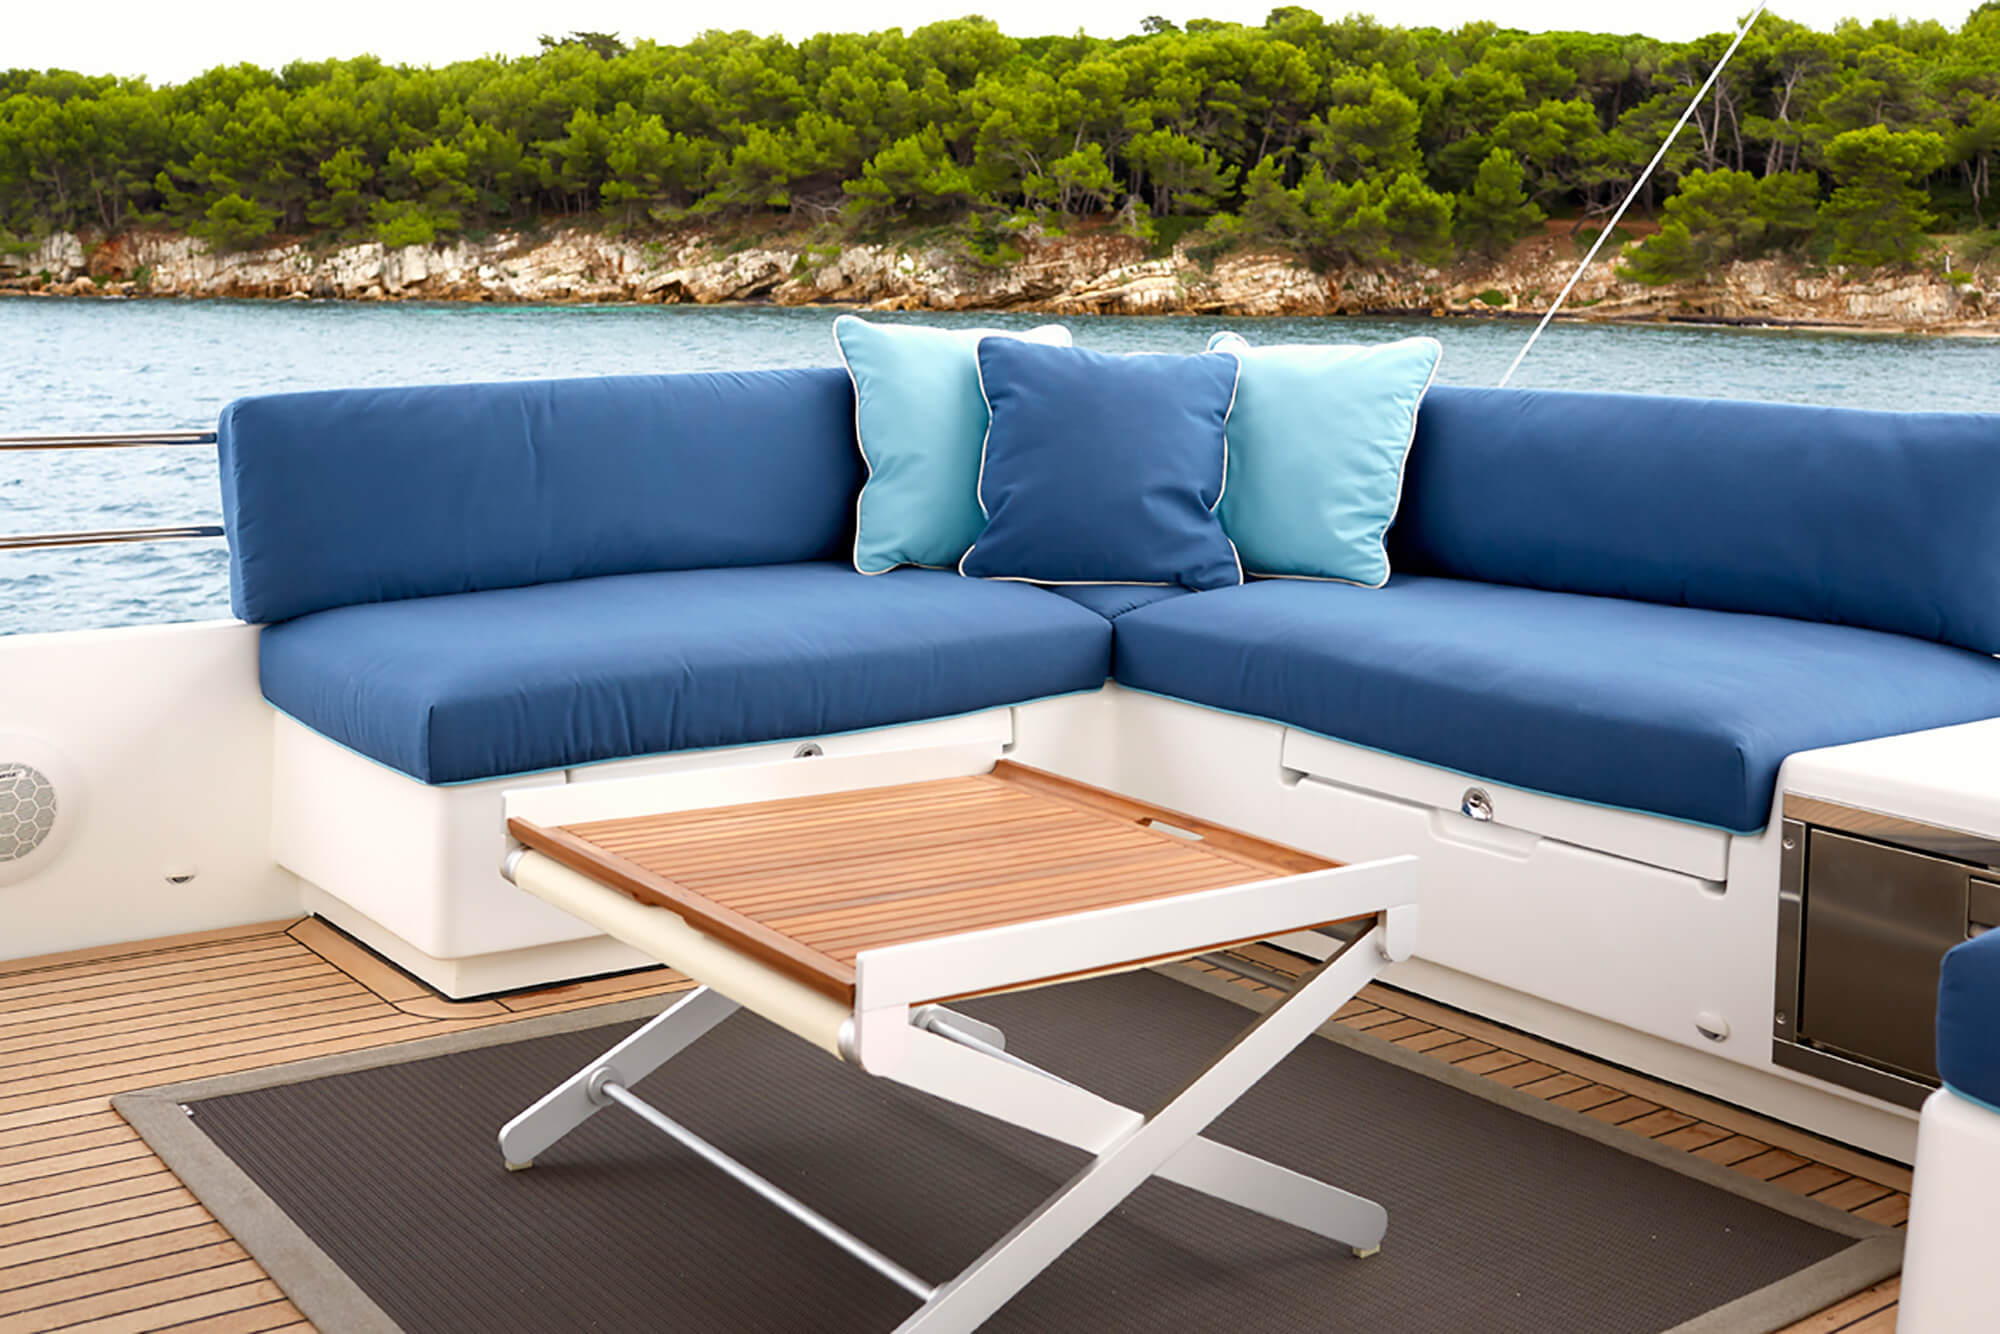 Cushions and Pillows made using different hues of blue Sunbrella upholstery fabrics on seating on the exterior of a catamaran